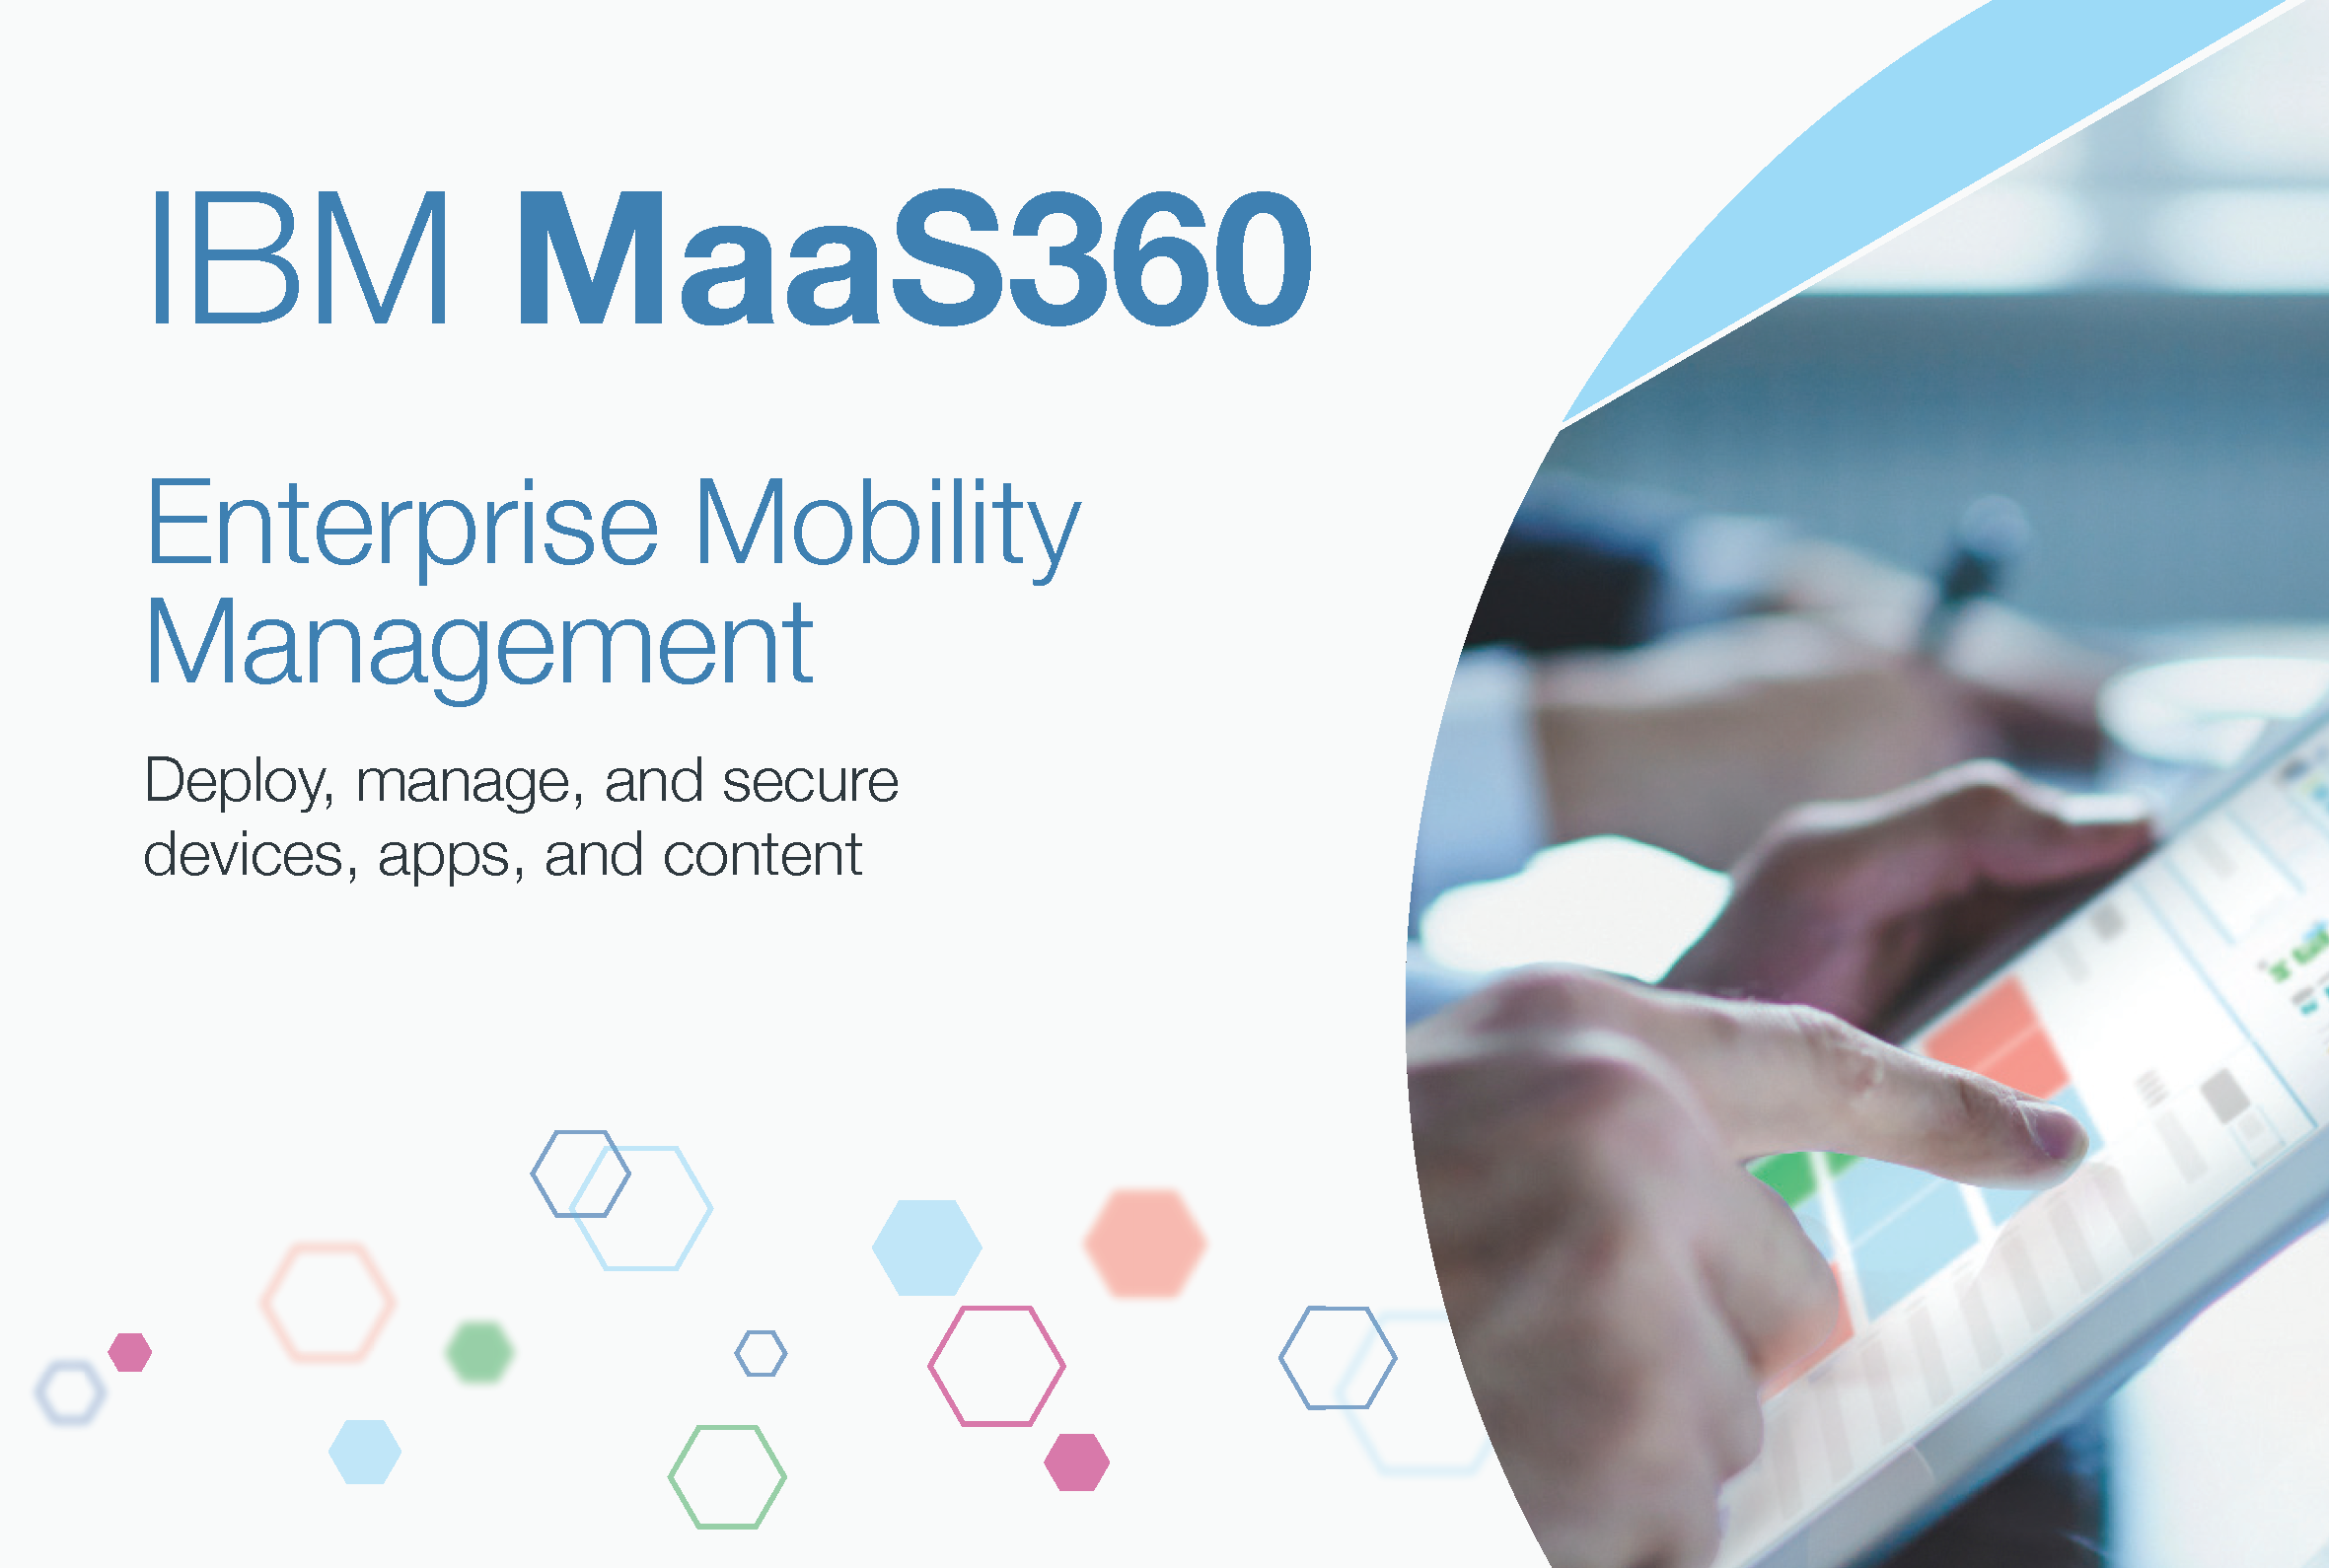 https://www.nolinetel.com/wp-content/uploads/2019/08/IBM-MaaS360-Event-Brochure_nolinetel-contact-info_Page_1.png